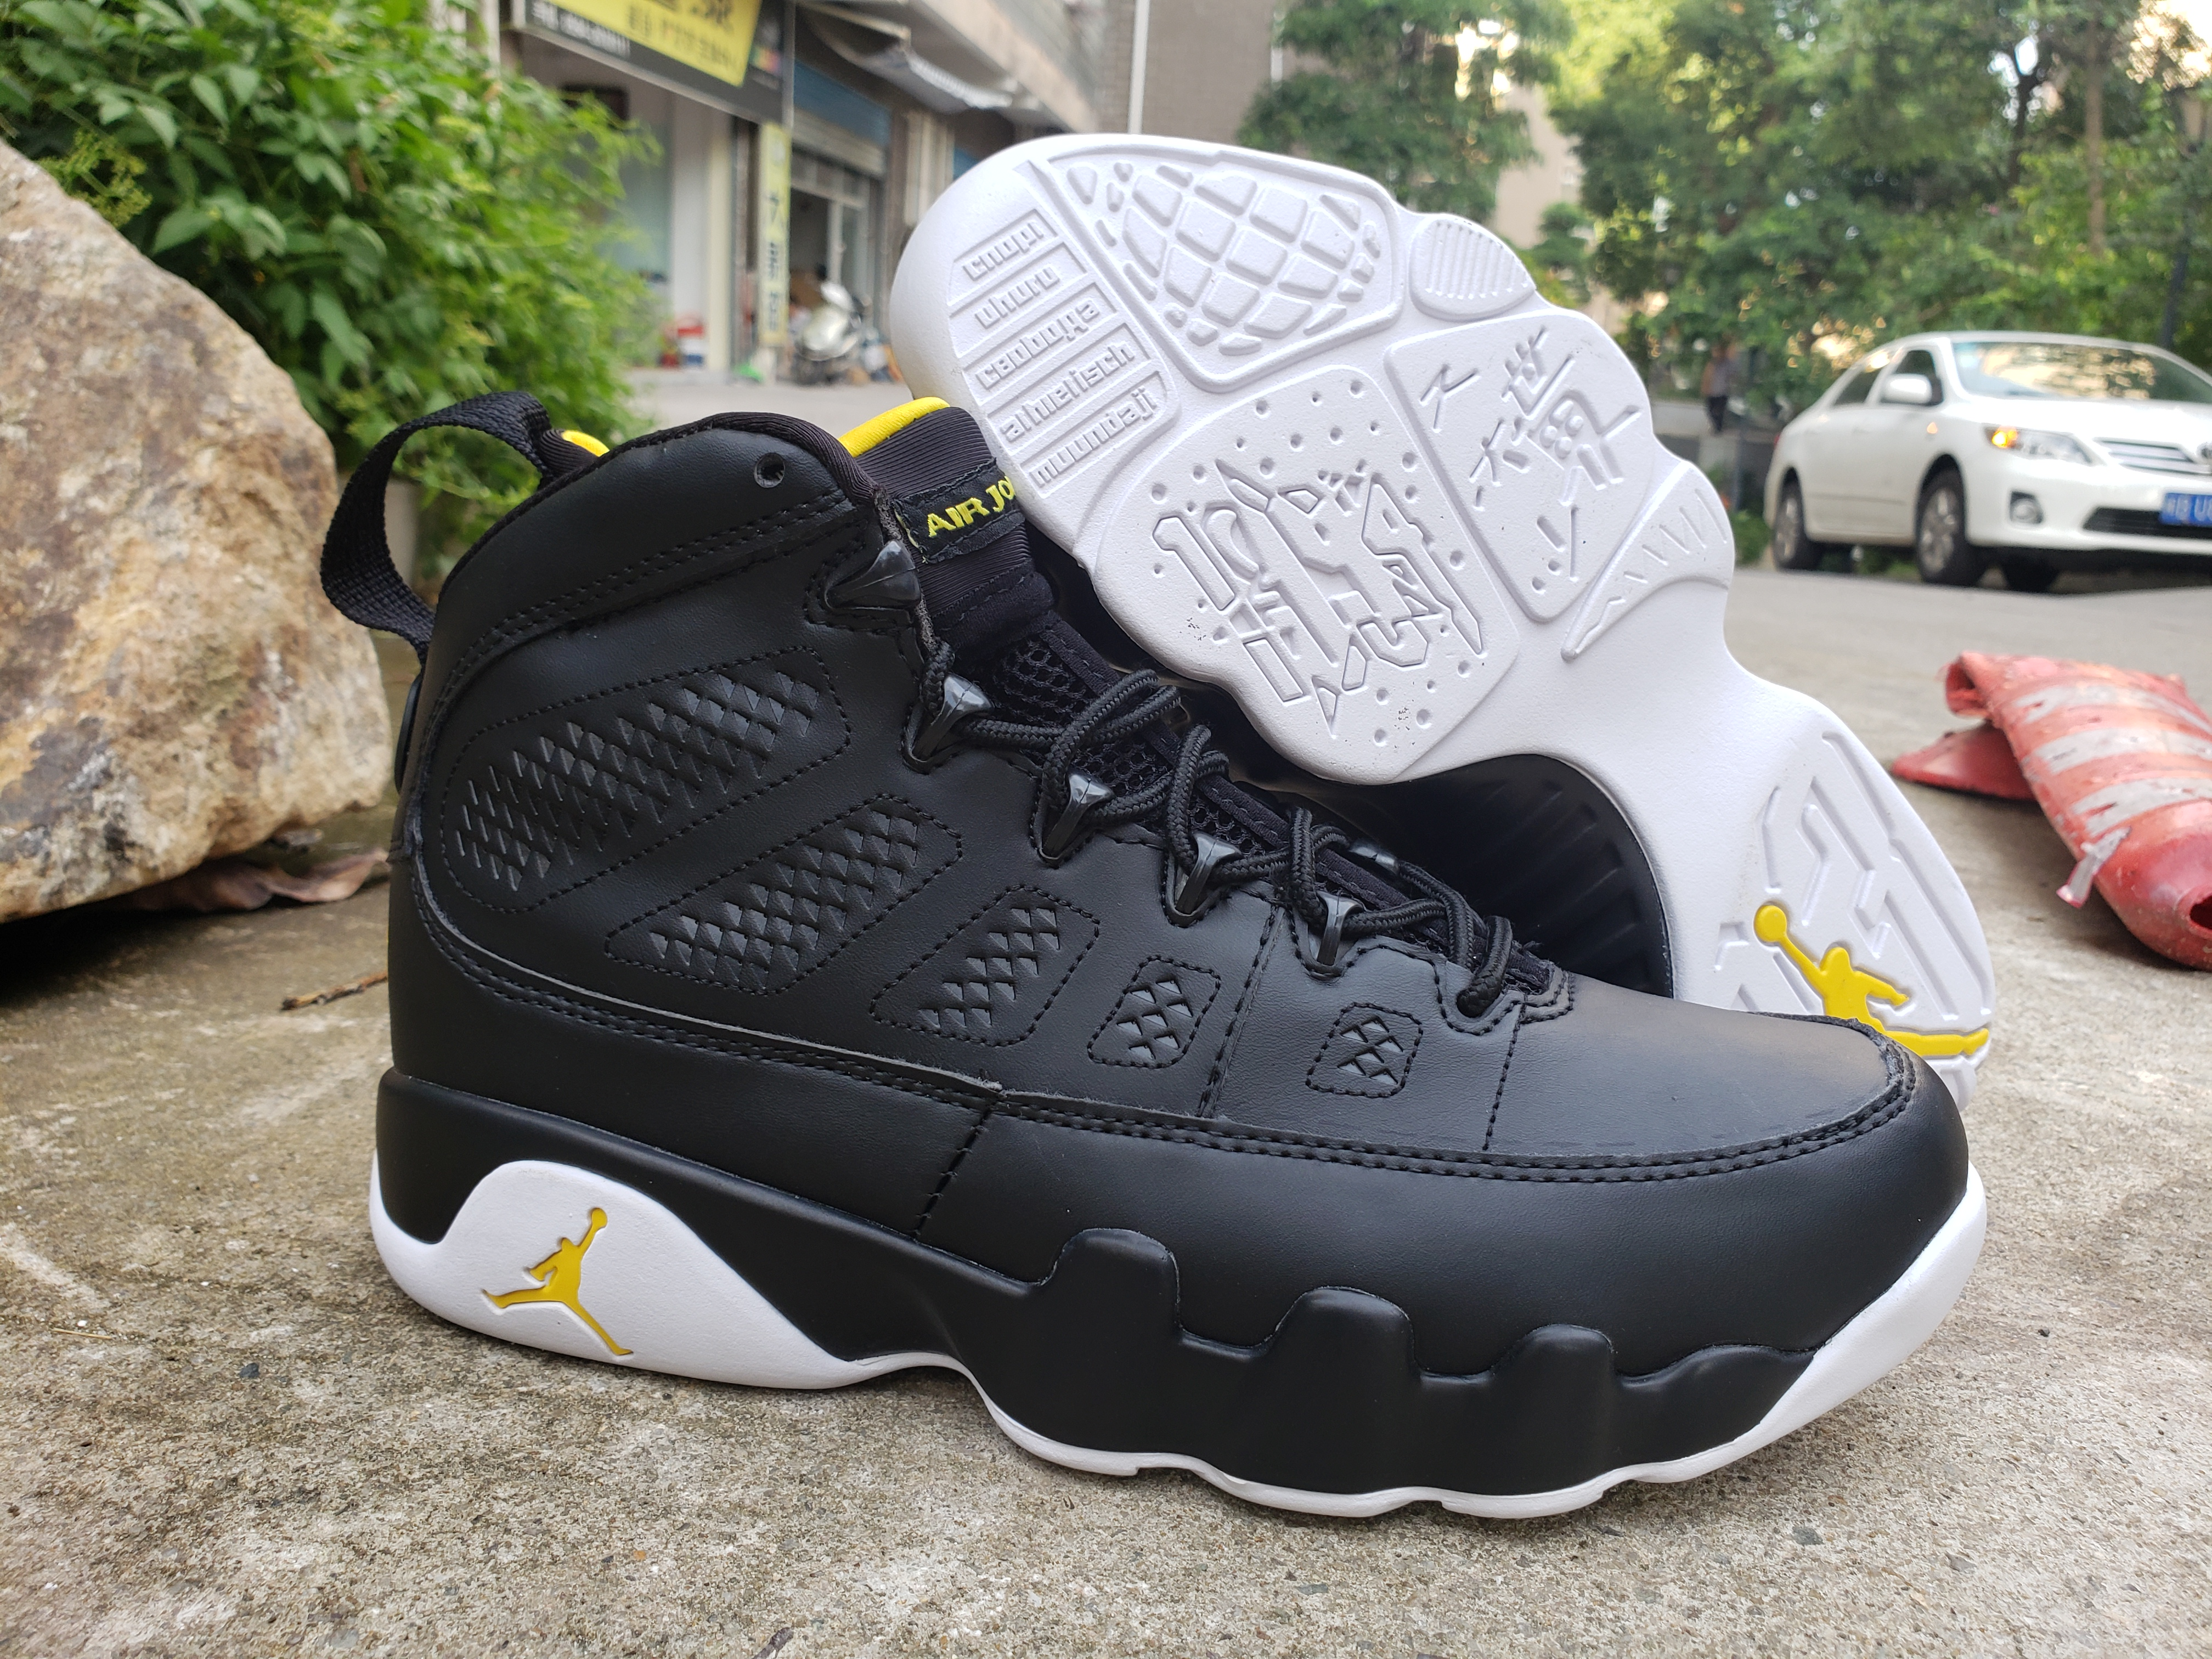 2019 Air Jordan 9 Retro Black White Yellow Shoes